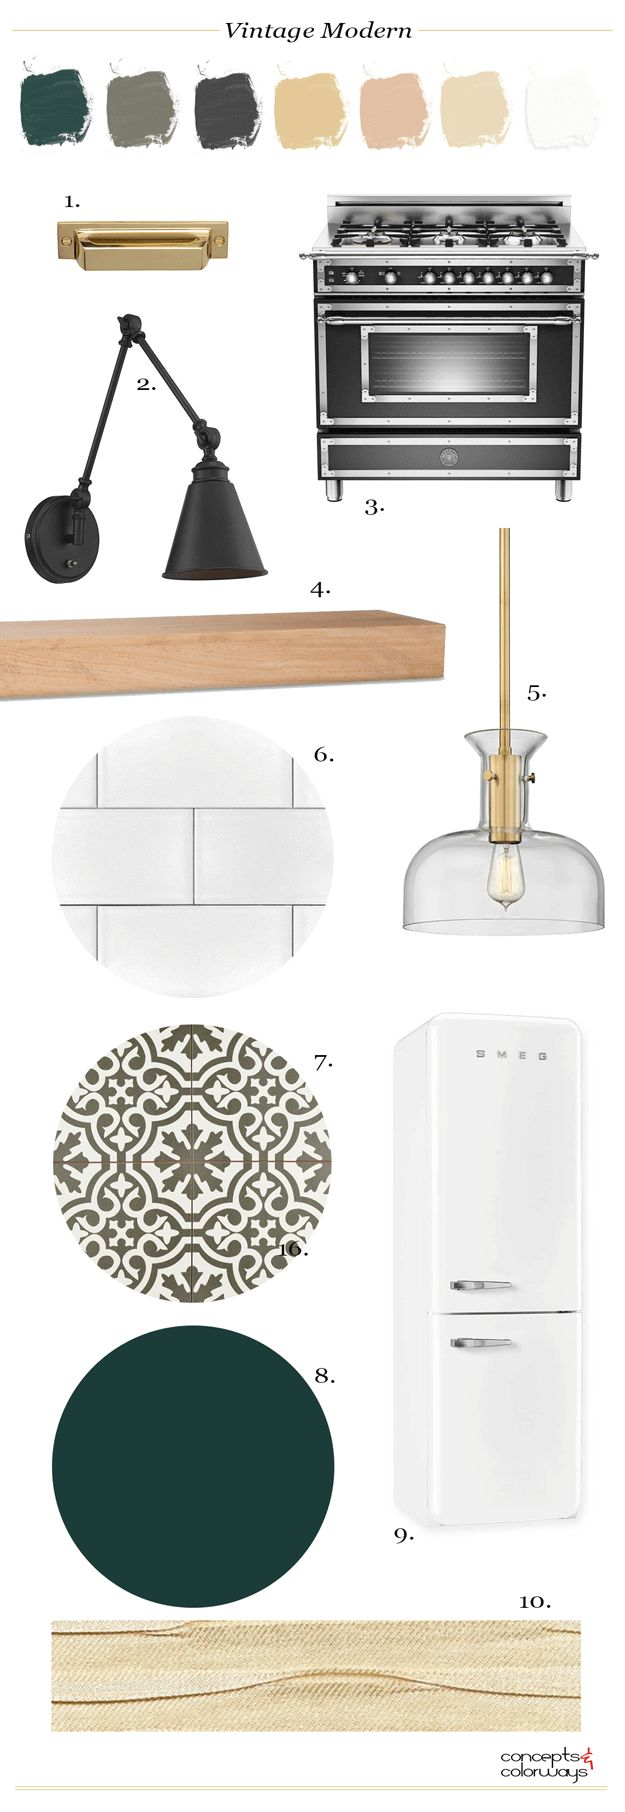 vintage modern farmhouse kitchen, white farmhouse kitchen ideas, vintage kitchen inspiration, interior styling, smeg refrigerator, natural wood floating shelf, dark hunter green, black and white patterned tile, gold pendant light, brass hardware, black adjustable wall sconce, vintage style gas range, black and stainless steel range